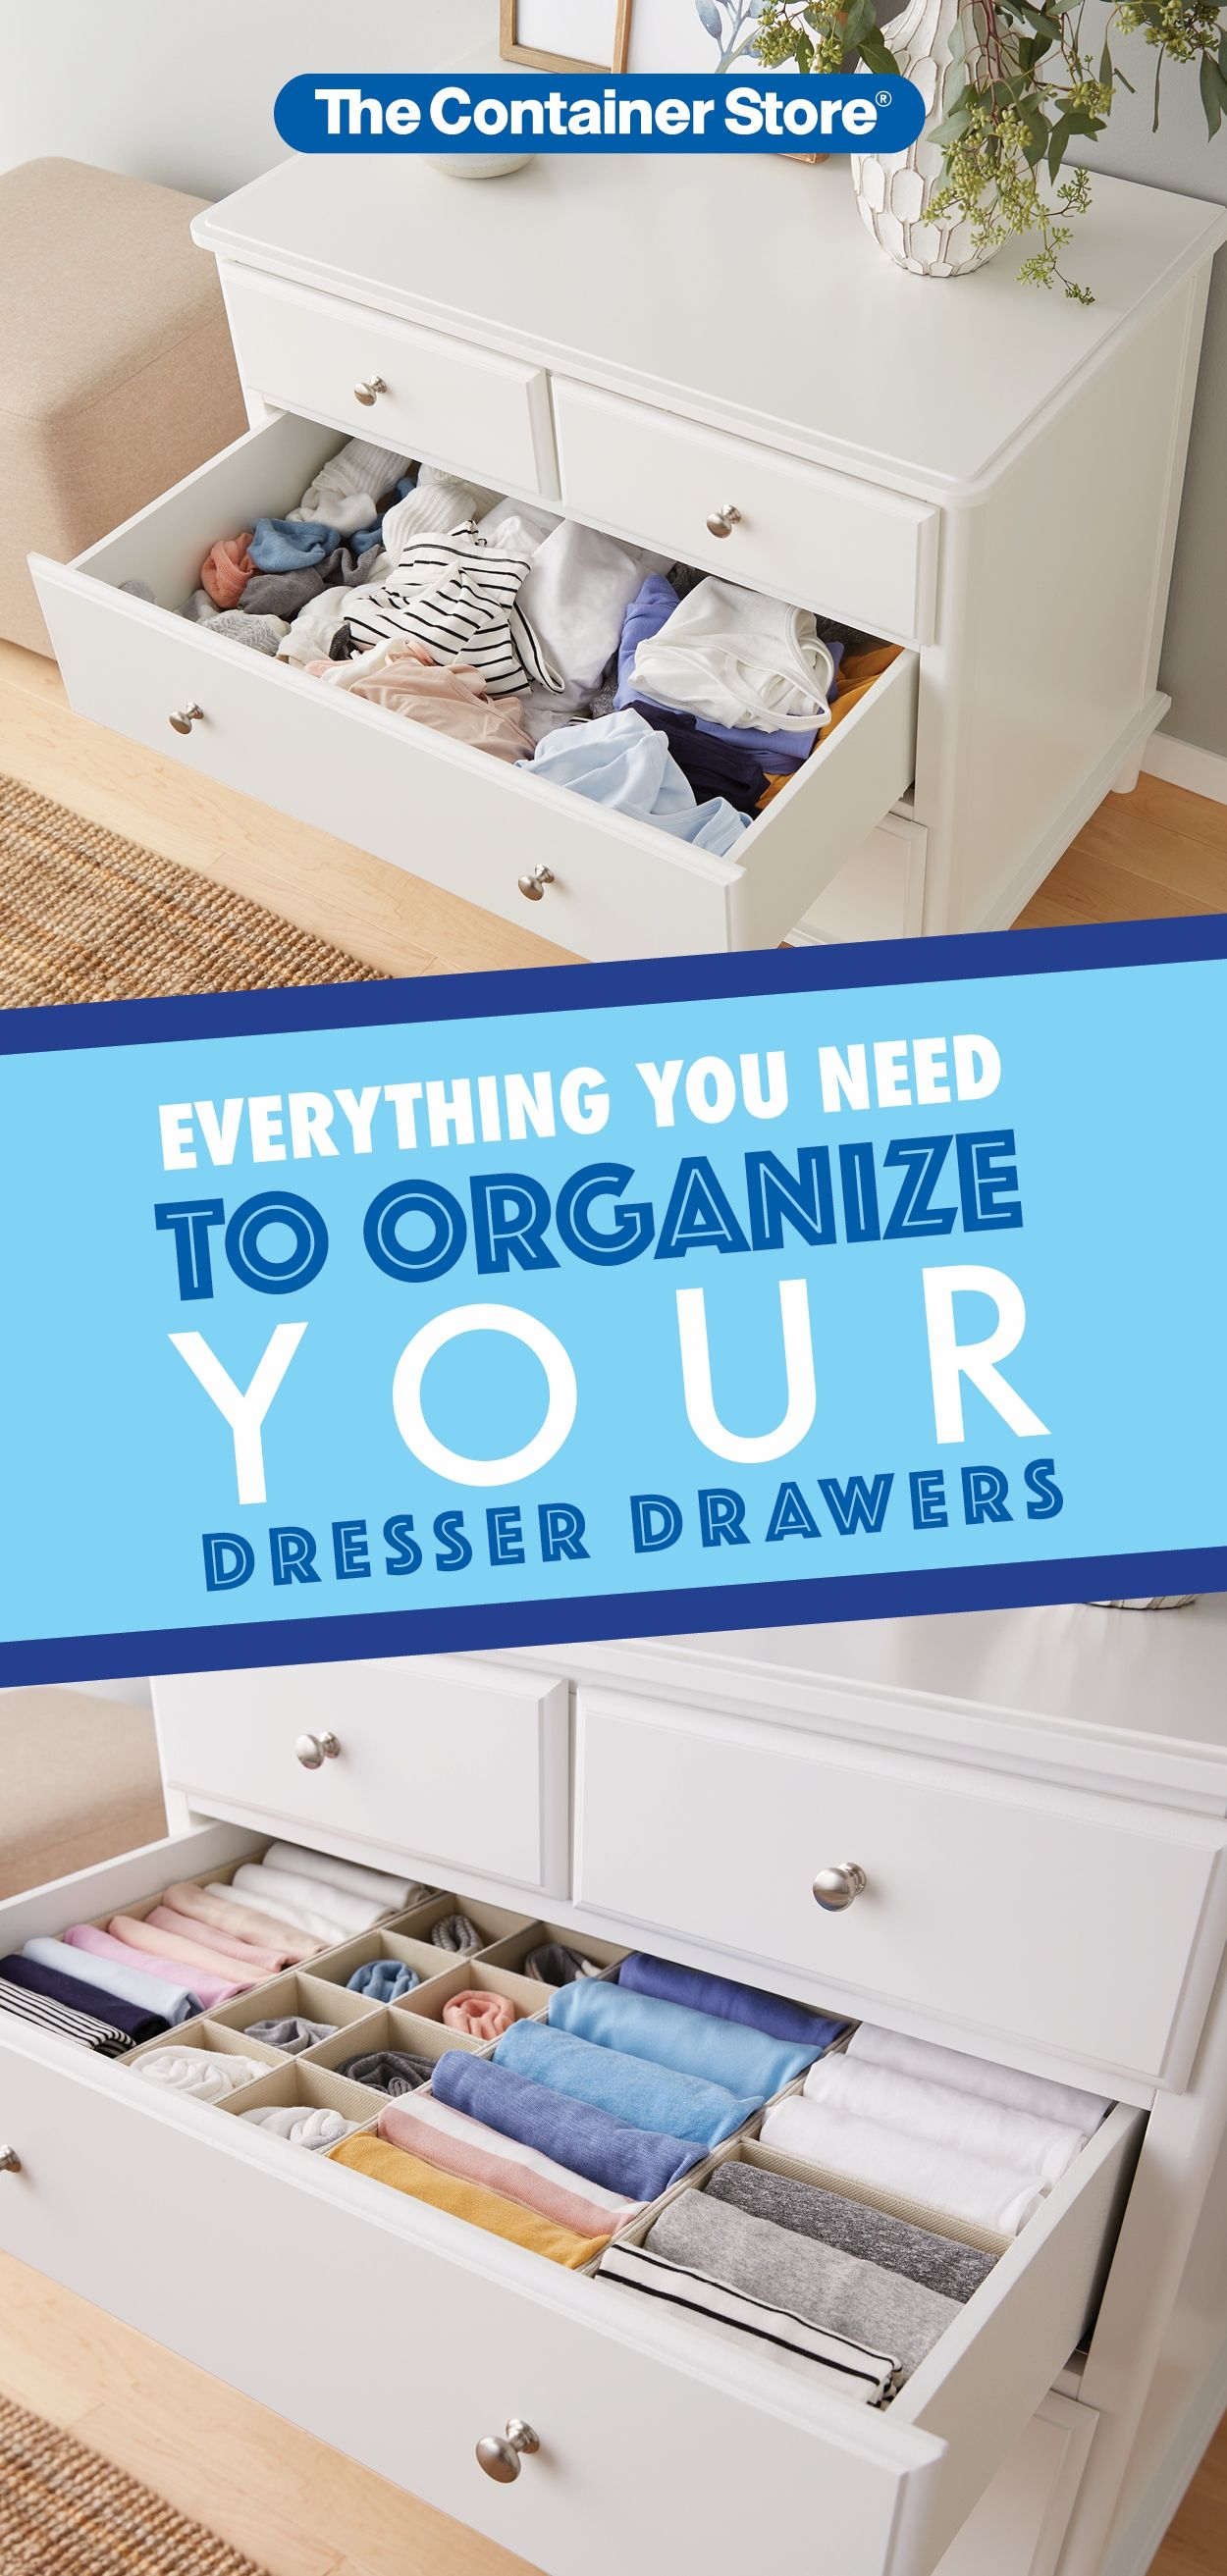 Keep Those Drawer Nice And Neat With These Awesome Organizers Clothes Drawer Organization Deep Drawer Organization Closet Organizer With Drawers